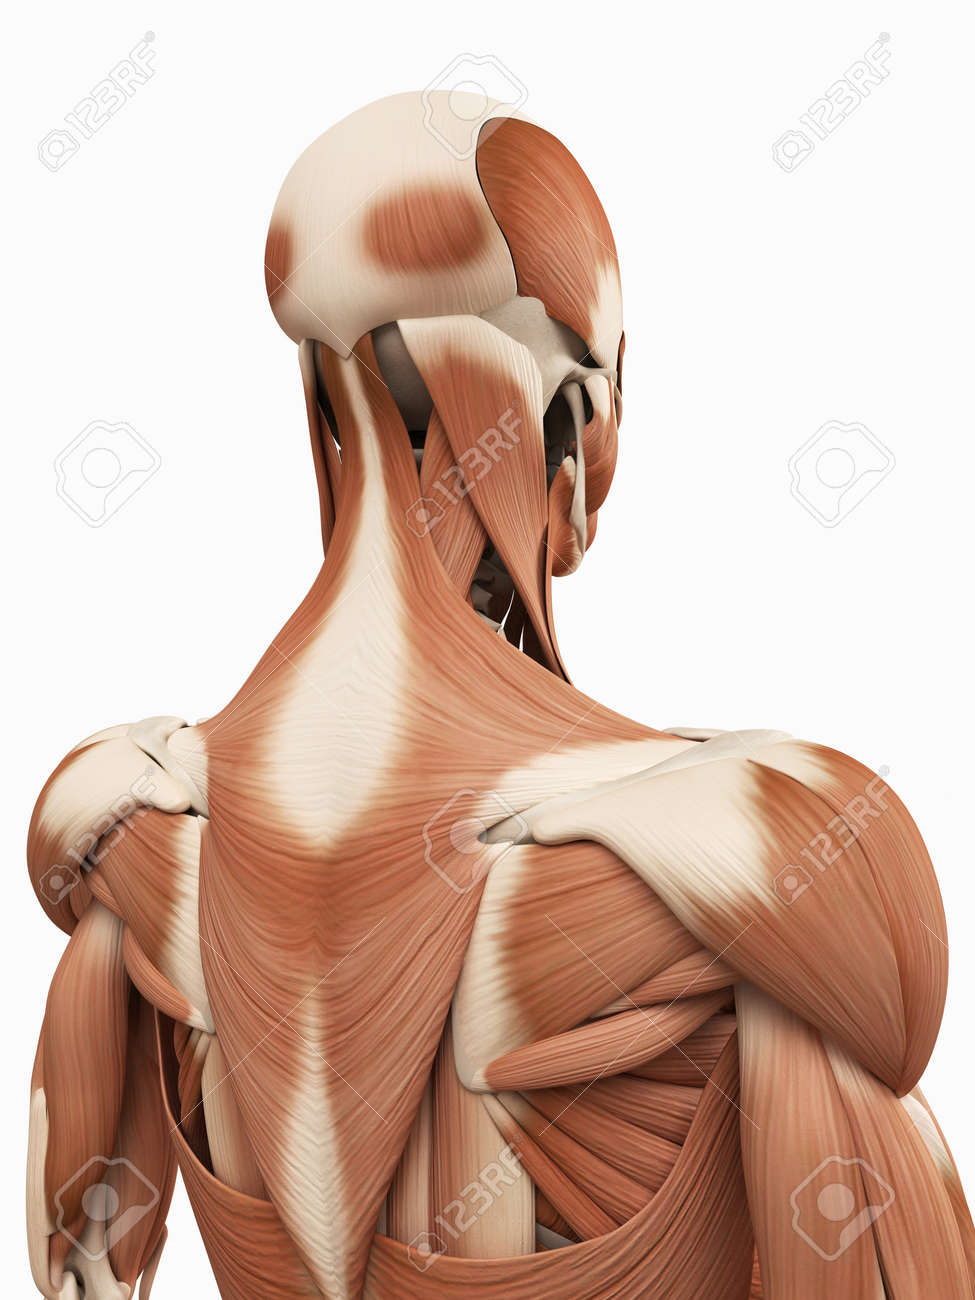 Medical 3d Illustration Of The Upper Back Muscles Stock Photo